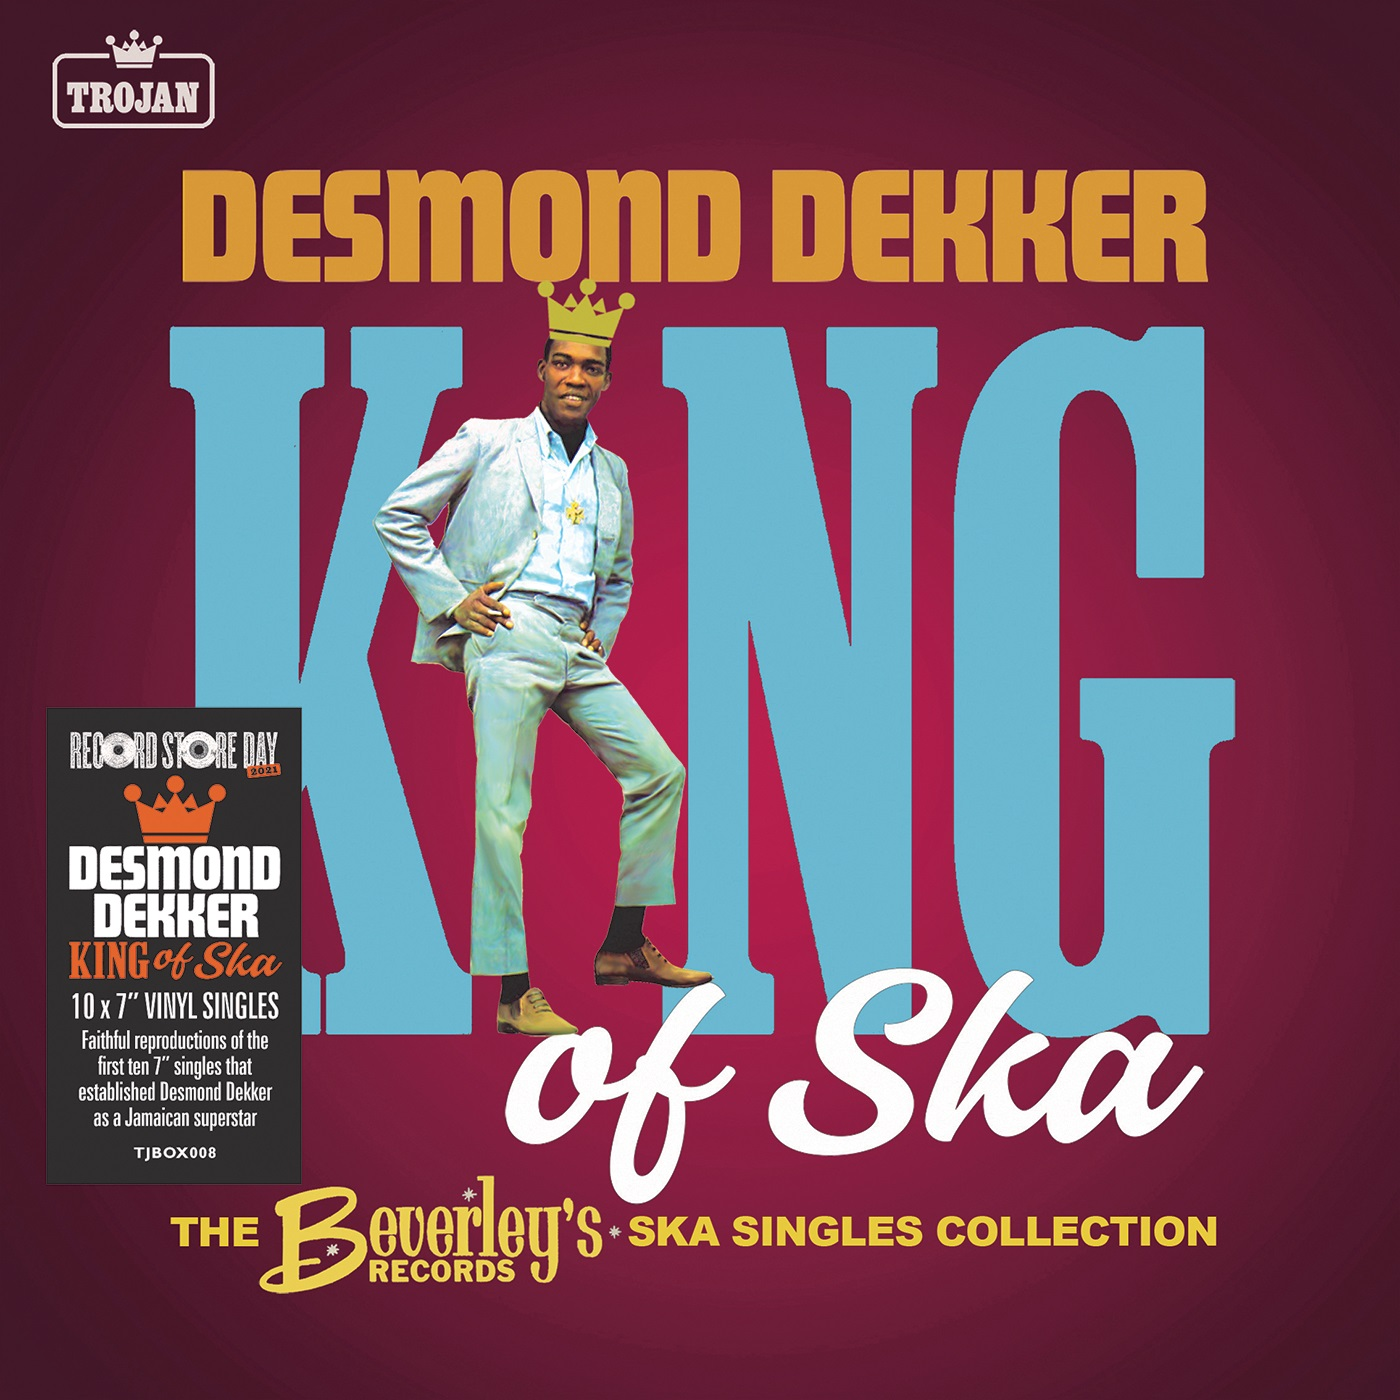 Desmond Dekker - King of Ska: The Early Singles Collection, 1963 - 1966 [RSD Drops 2021]